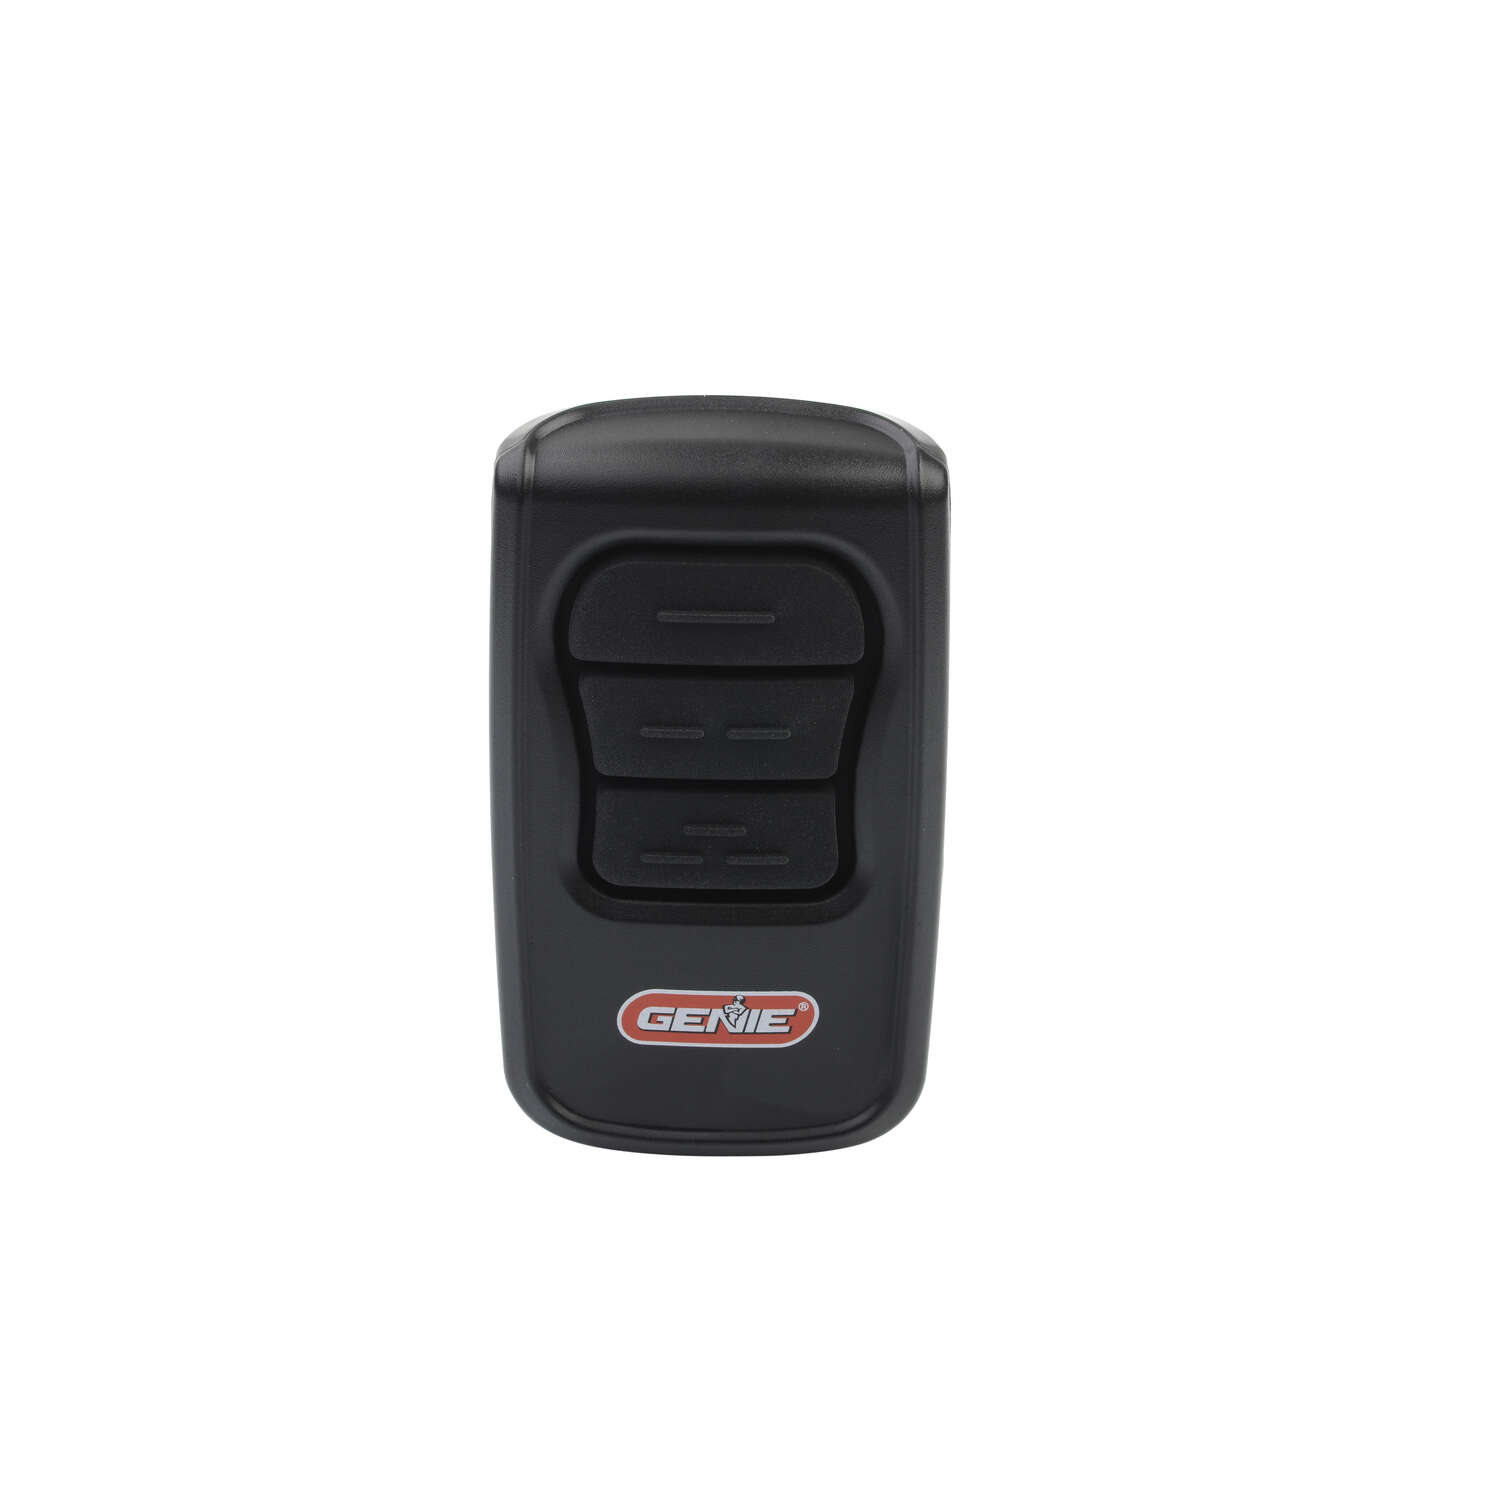 Genie  3 Door  Garage Door Opener Remote  For Genie Garage Doors Manufactured Since 1993